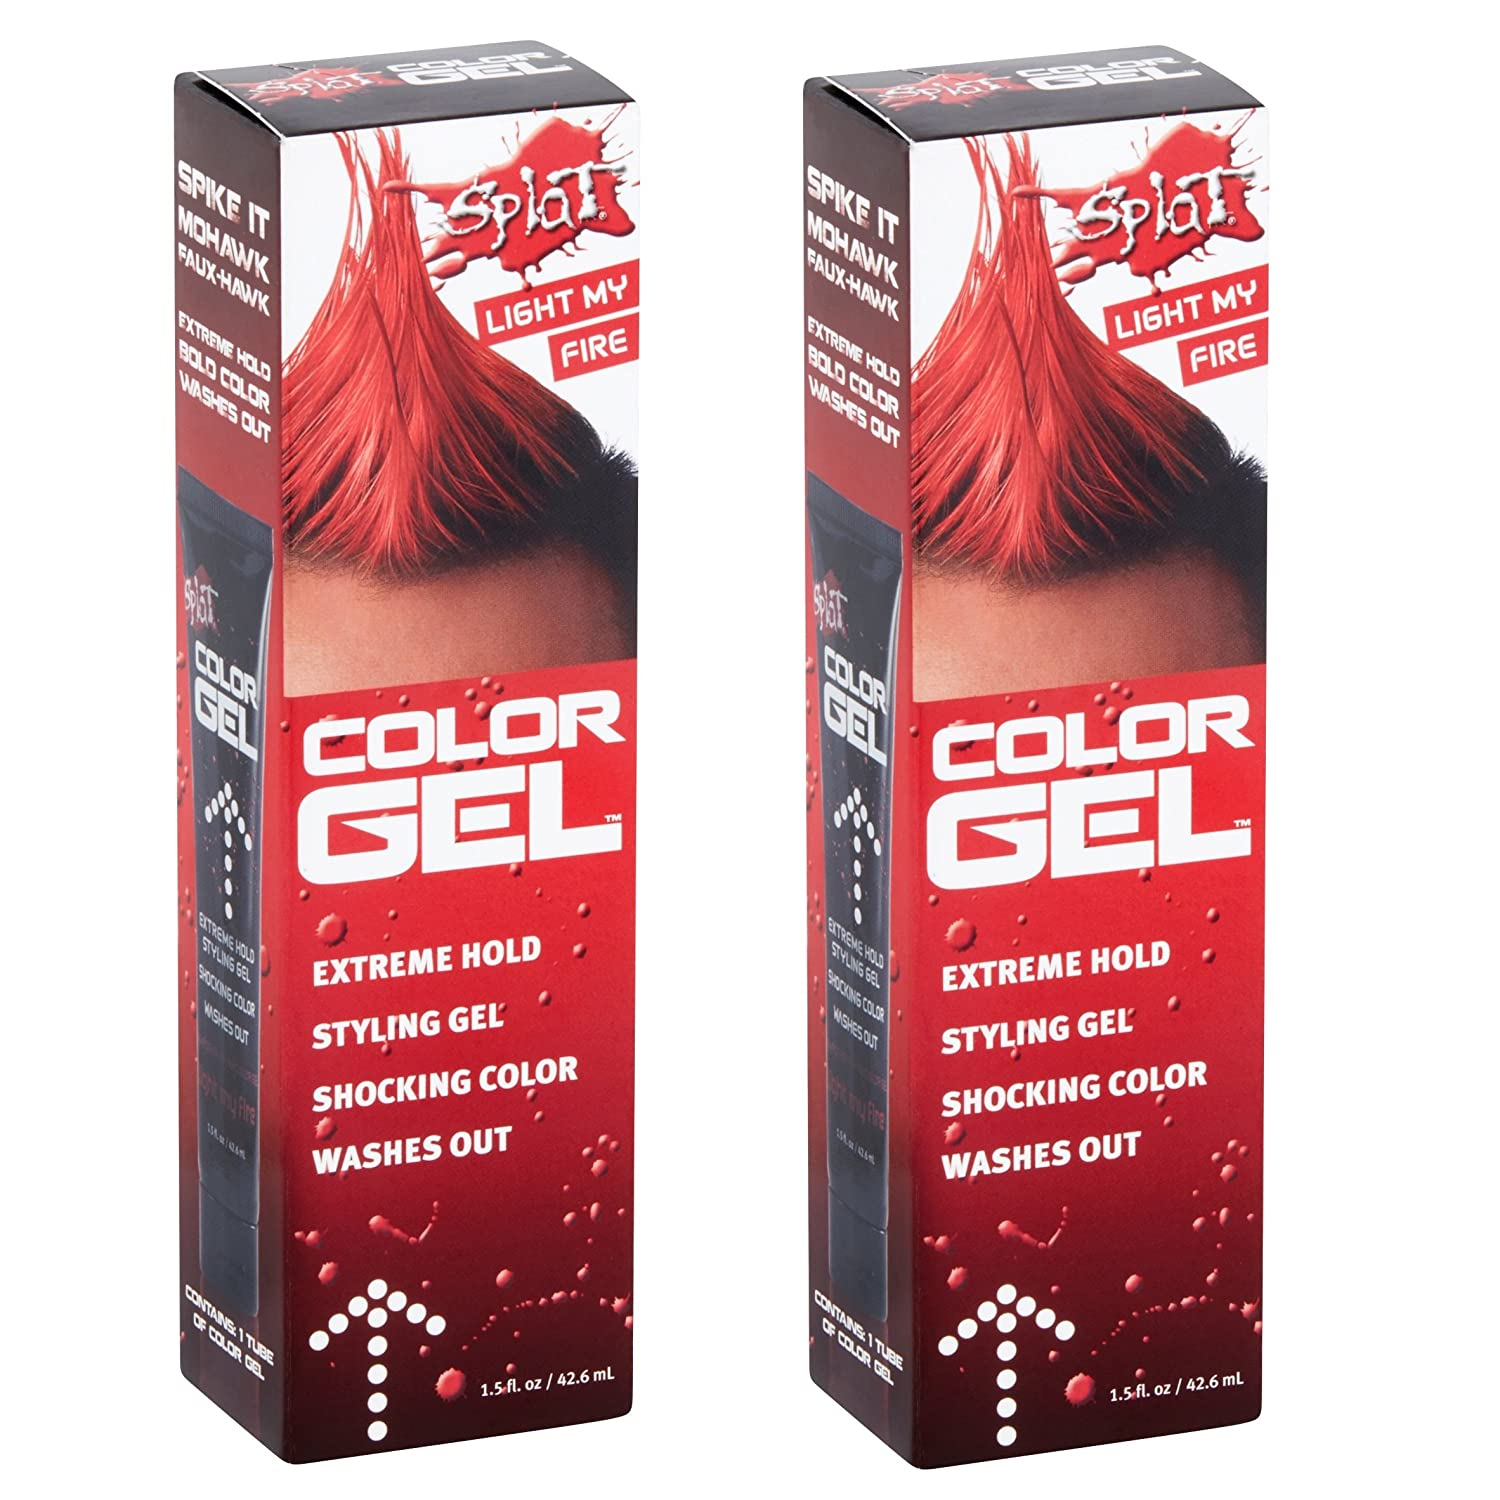 (2 Pack) Splat Shocking Color, Extreme Hold Styling Gel, Light My Fire, 1.5 Oz.